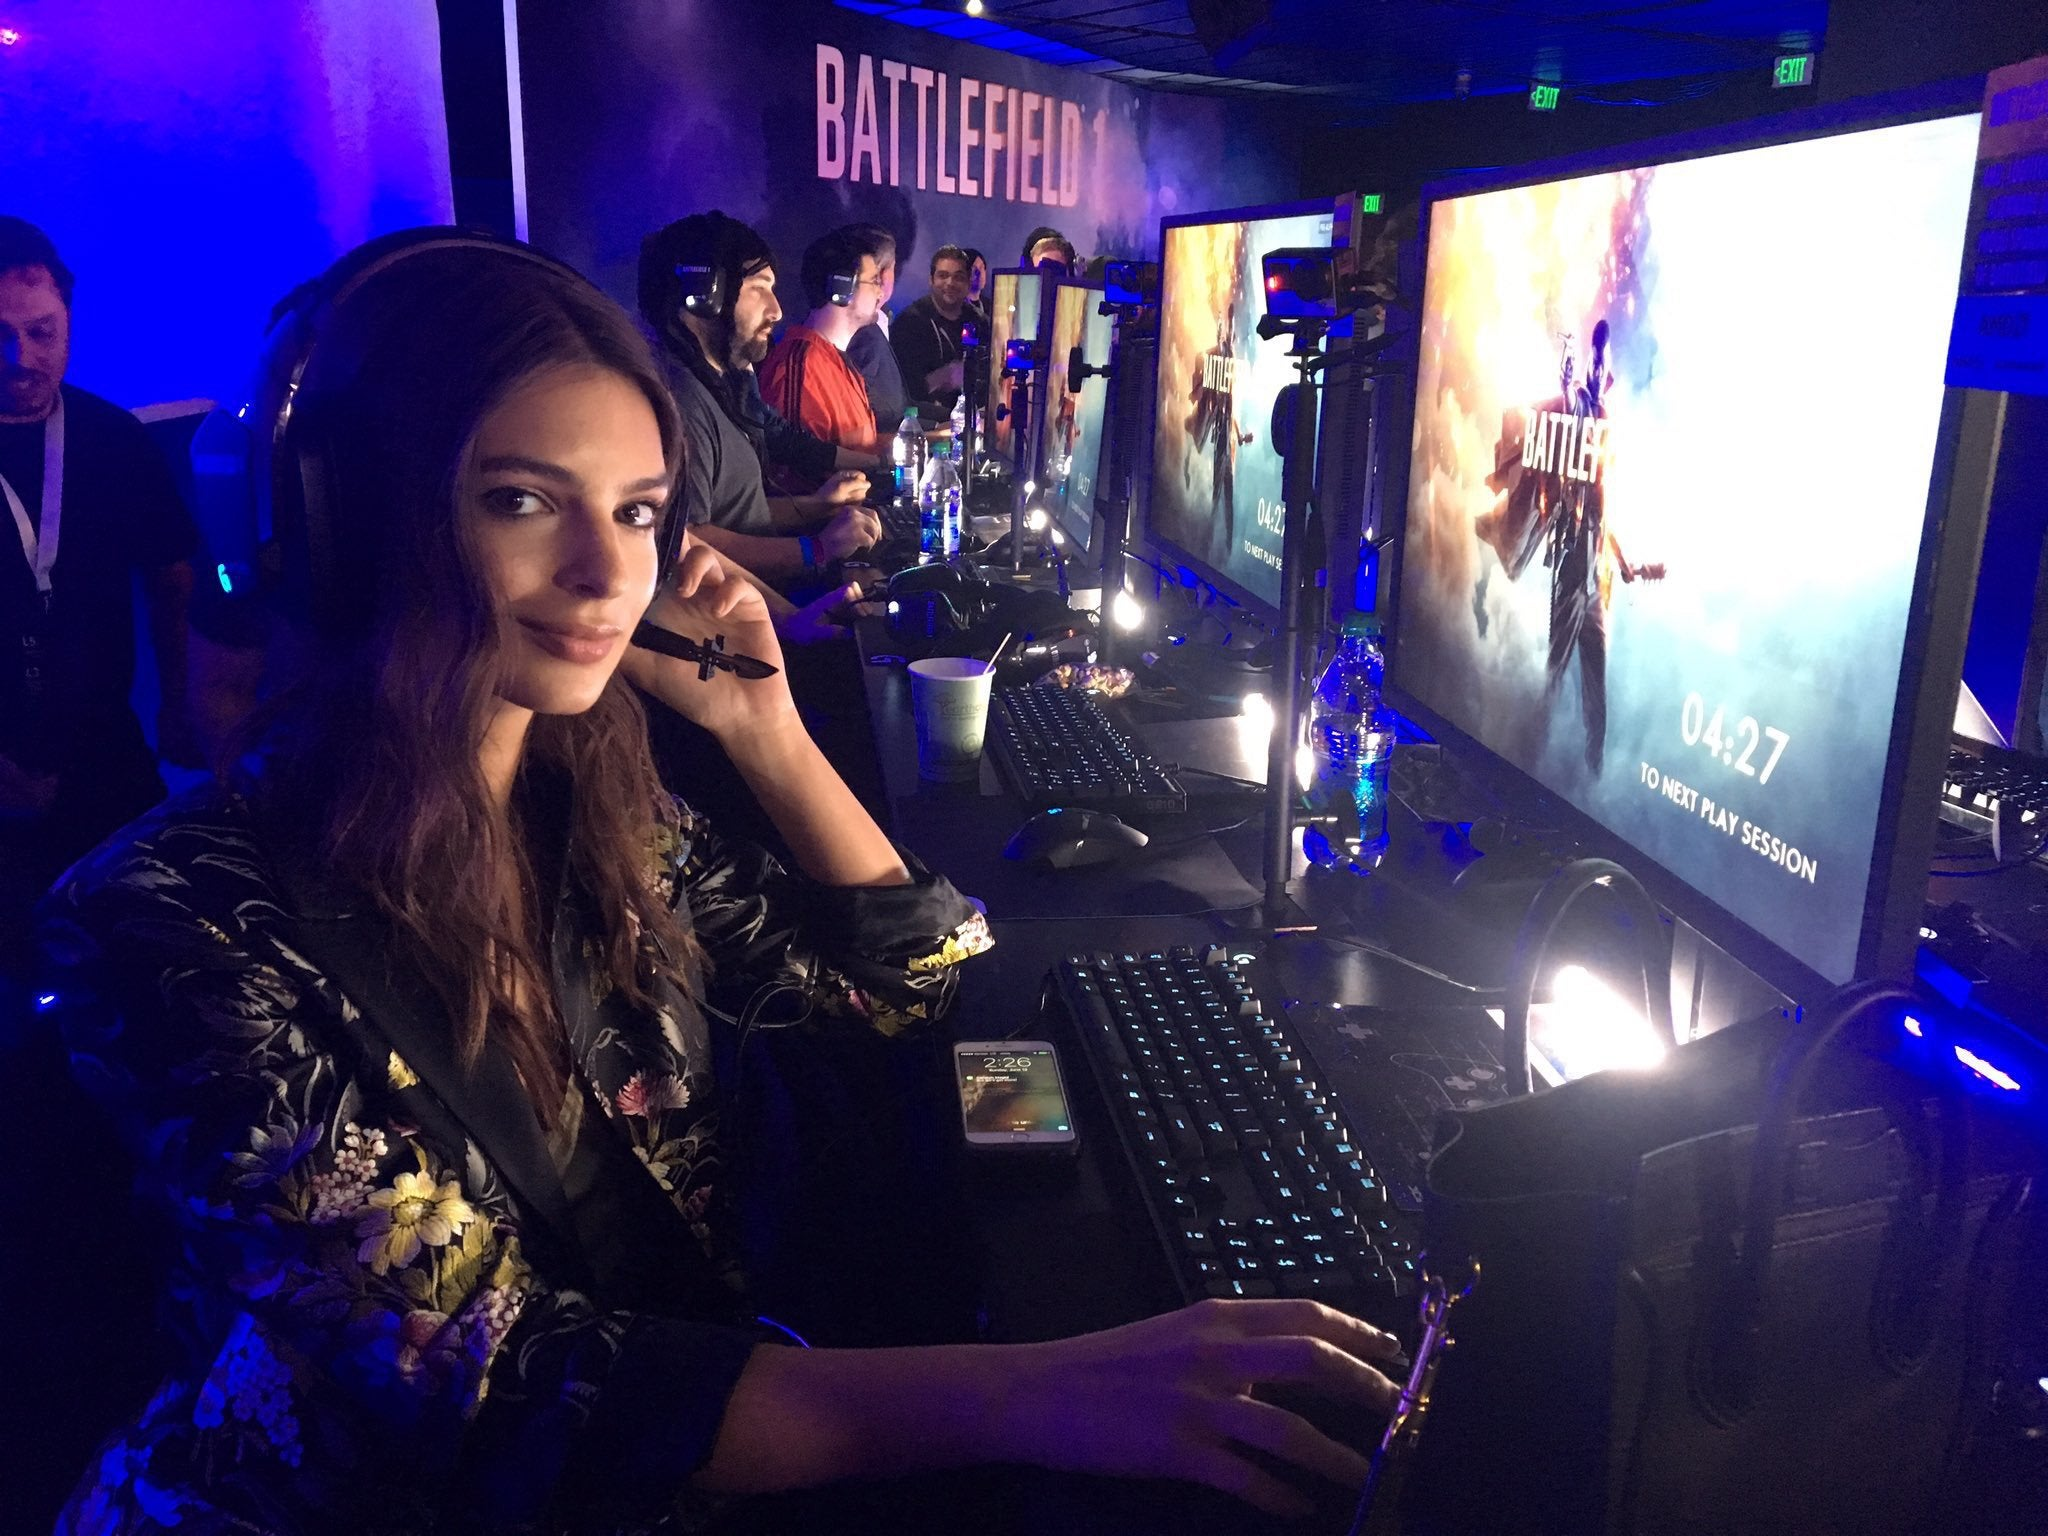 From booth-babes to the new E3 - editorial